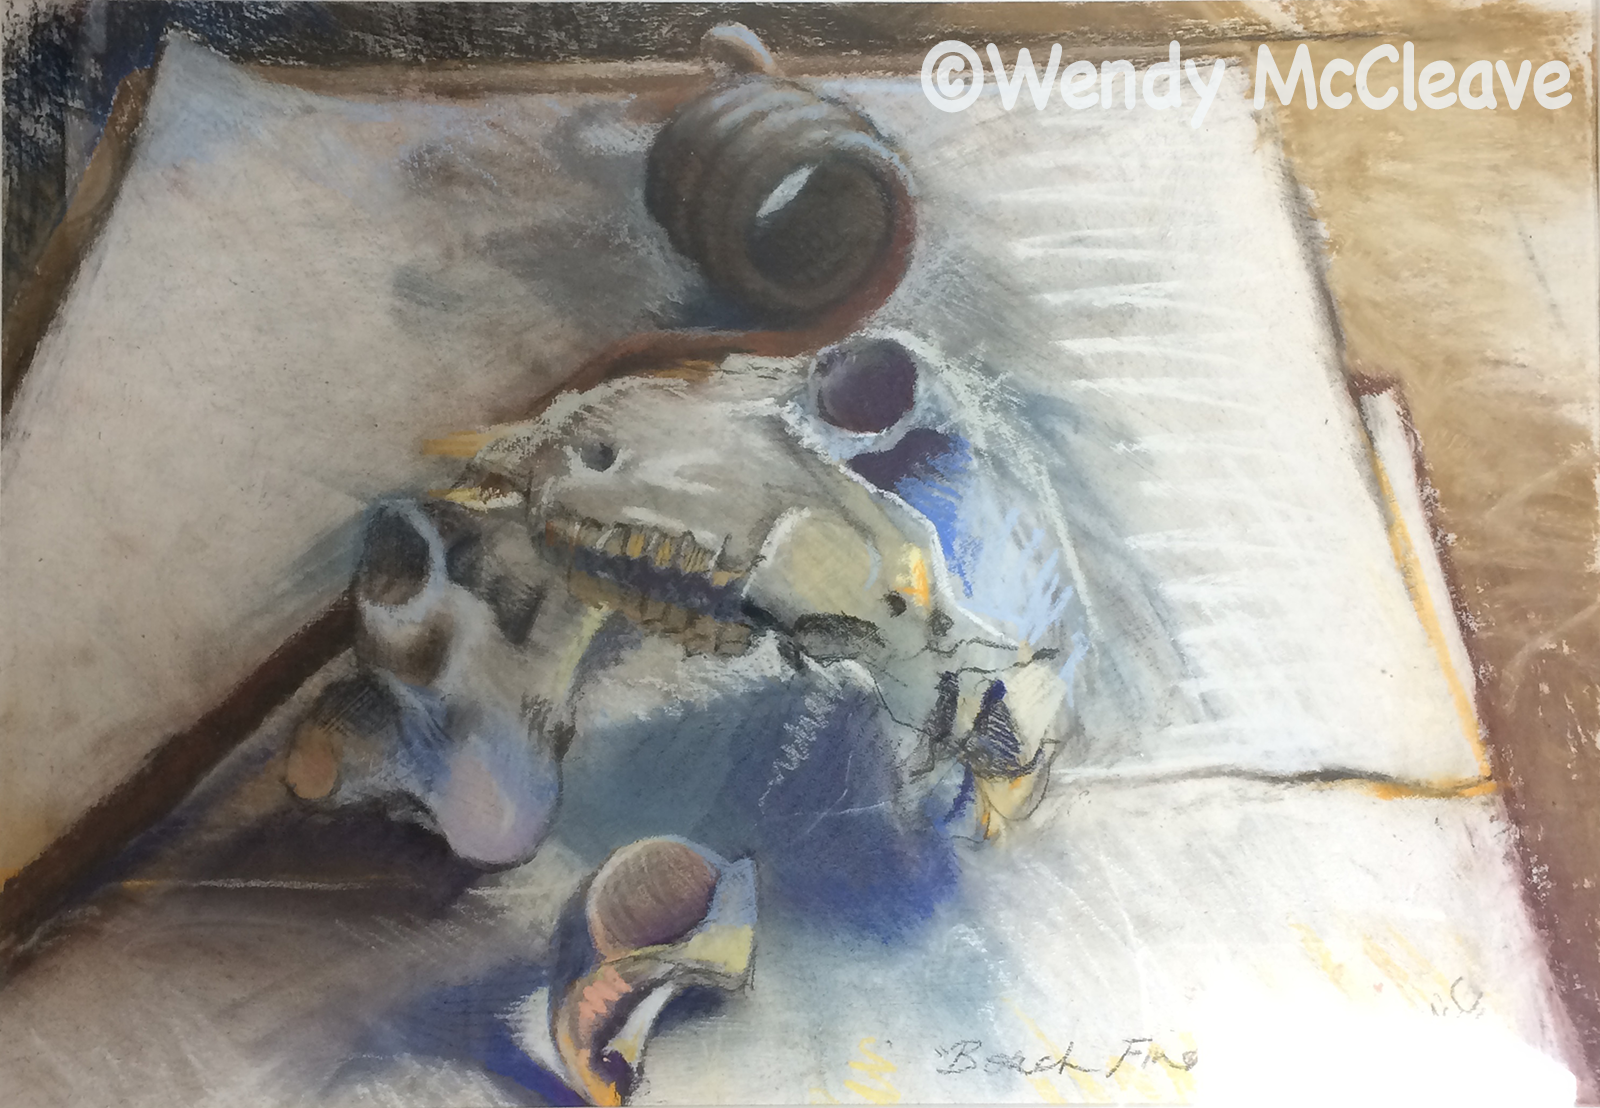 Still life mixed media painting of a collection of incongruous objects found on the beach